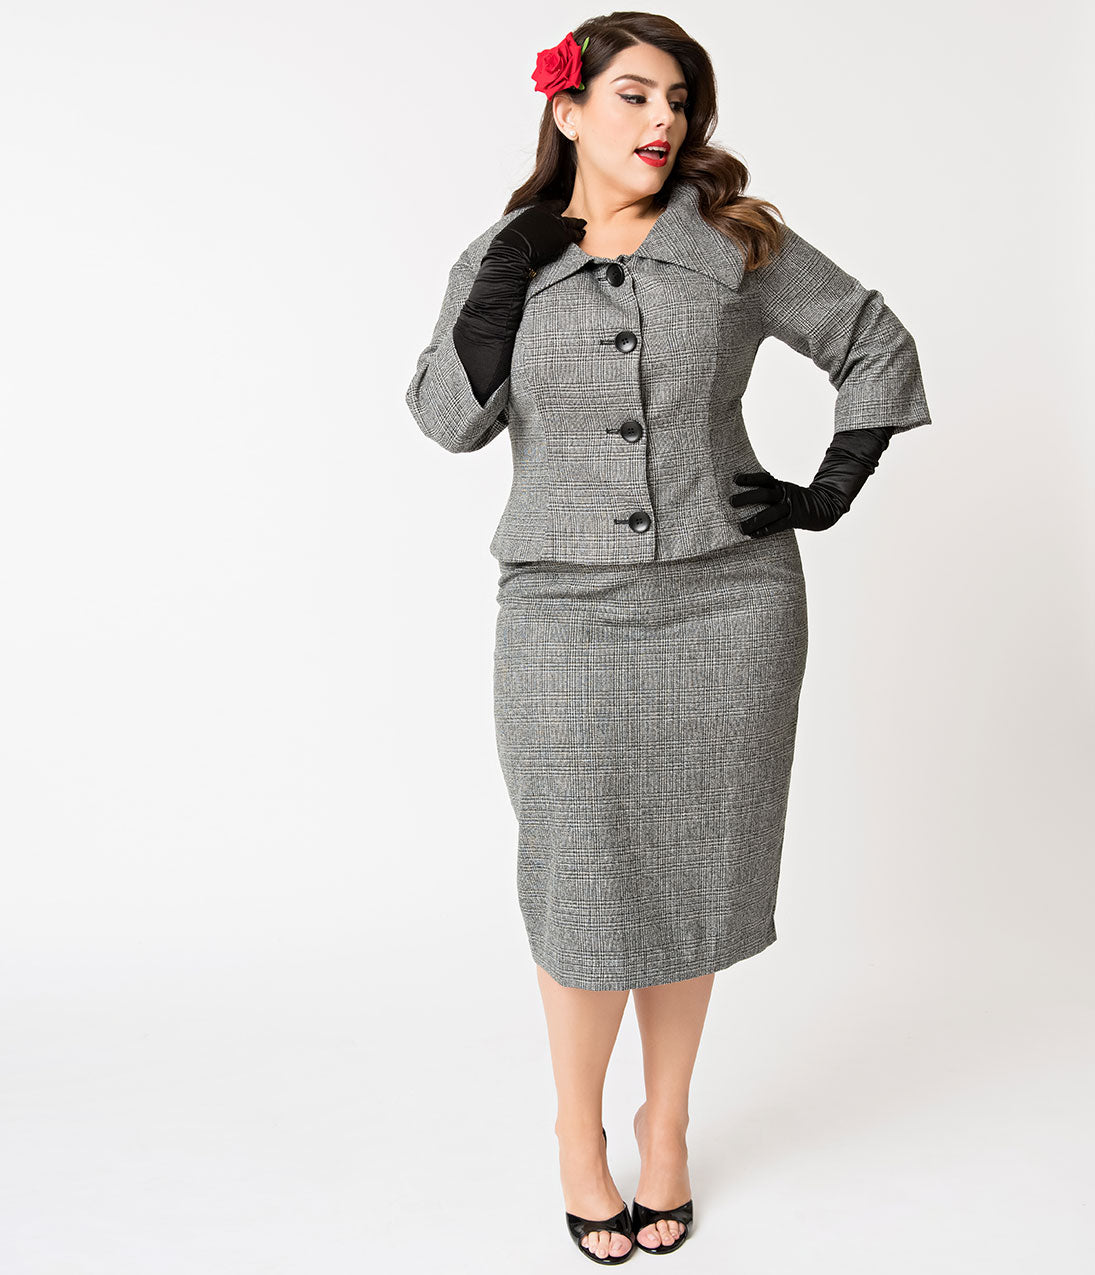 60s 70s Plus Size Dresses, Clothing, Costumes Barbie X Unique Vintage Plus Size Grey Tweed Career Girl Suit Set $188.00 AT vintagedancer.com